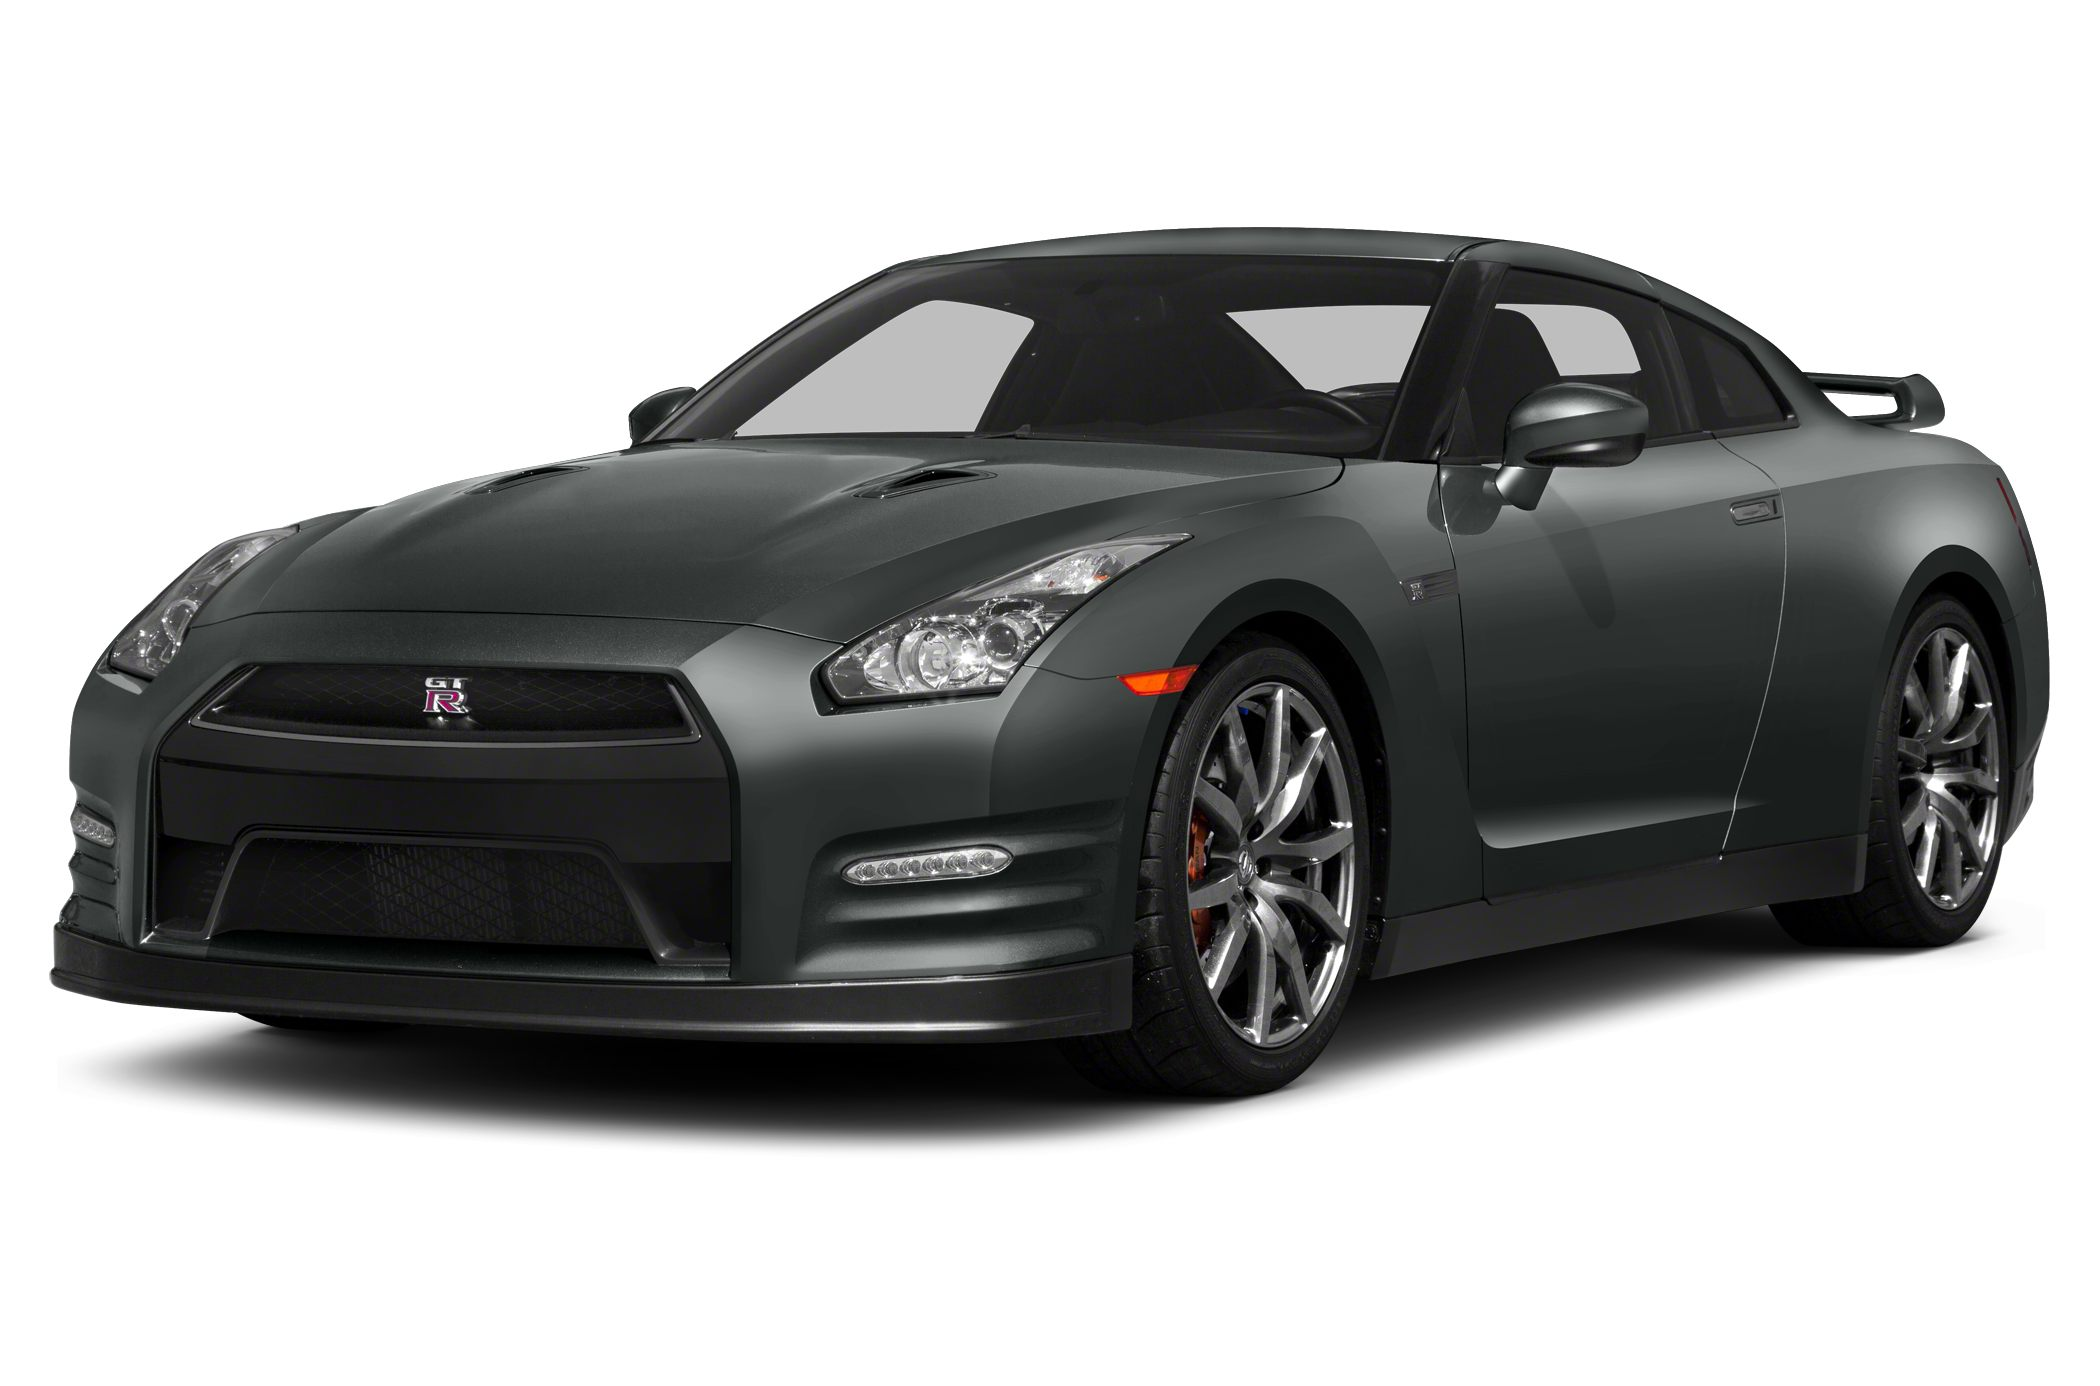 Used Nissan Gt-r for Sale Lovely Nissan Gt Rs for Sale Less Than 50 000 Dollars